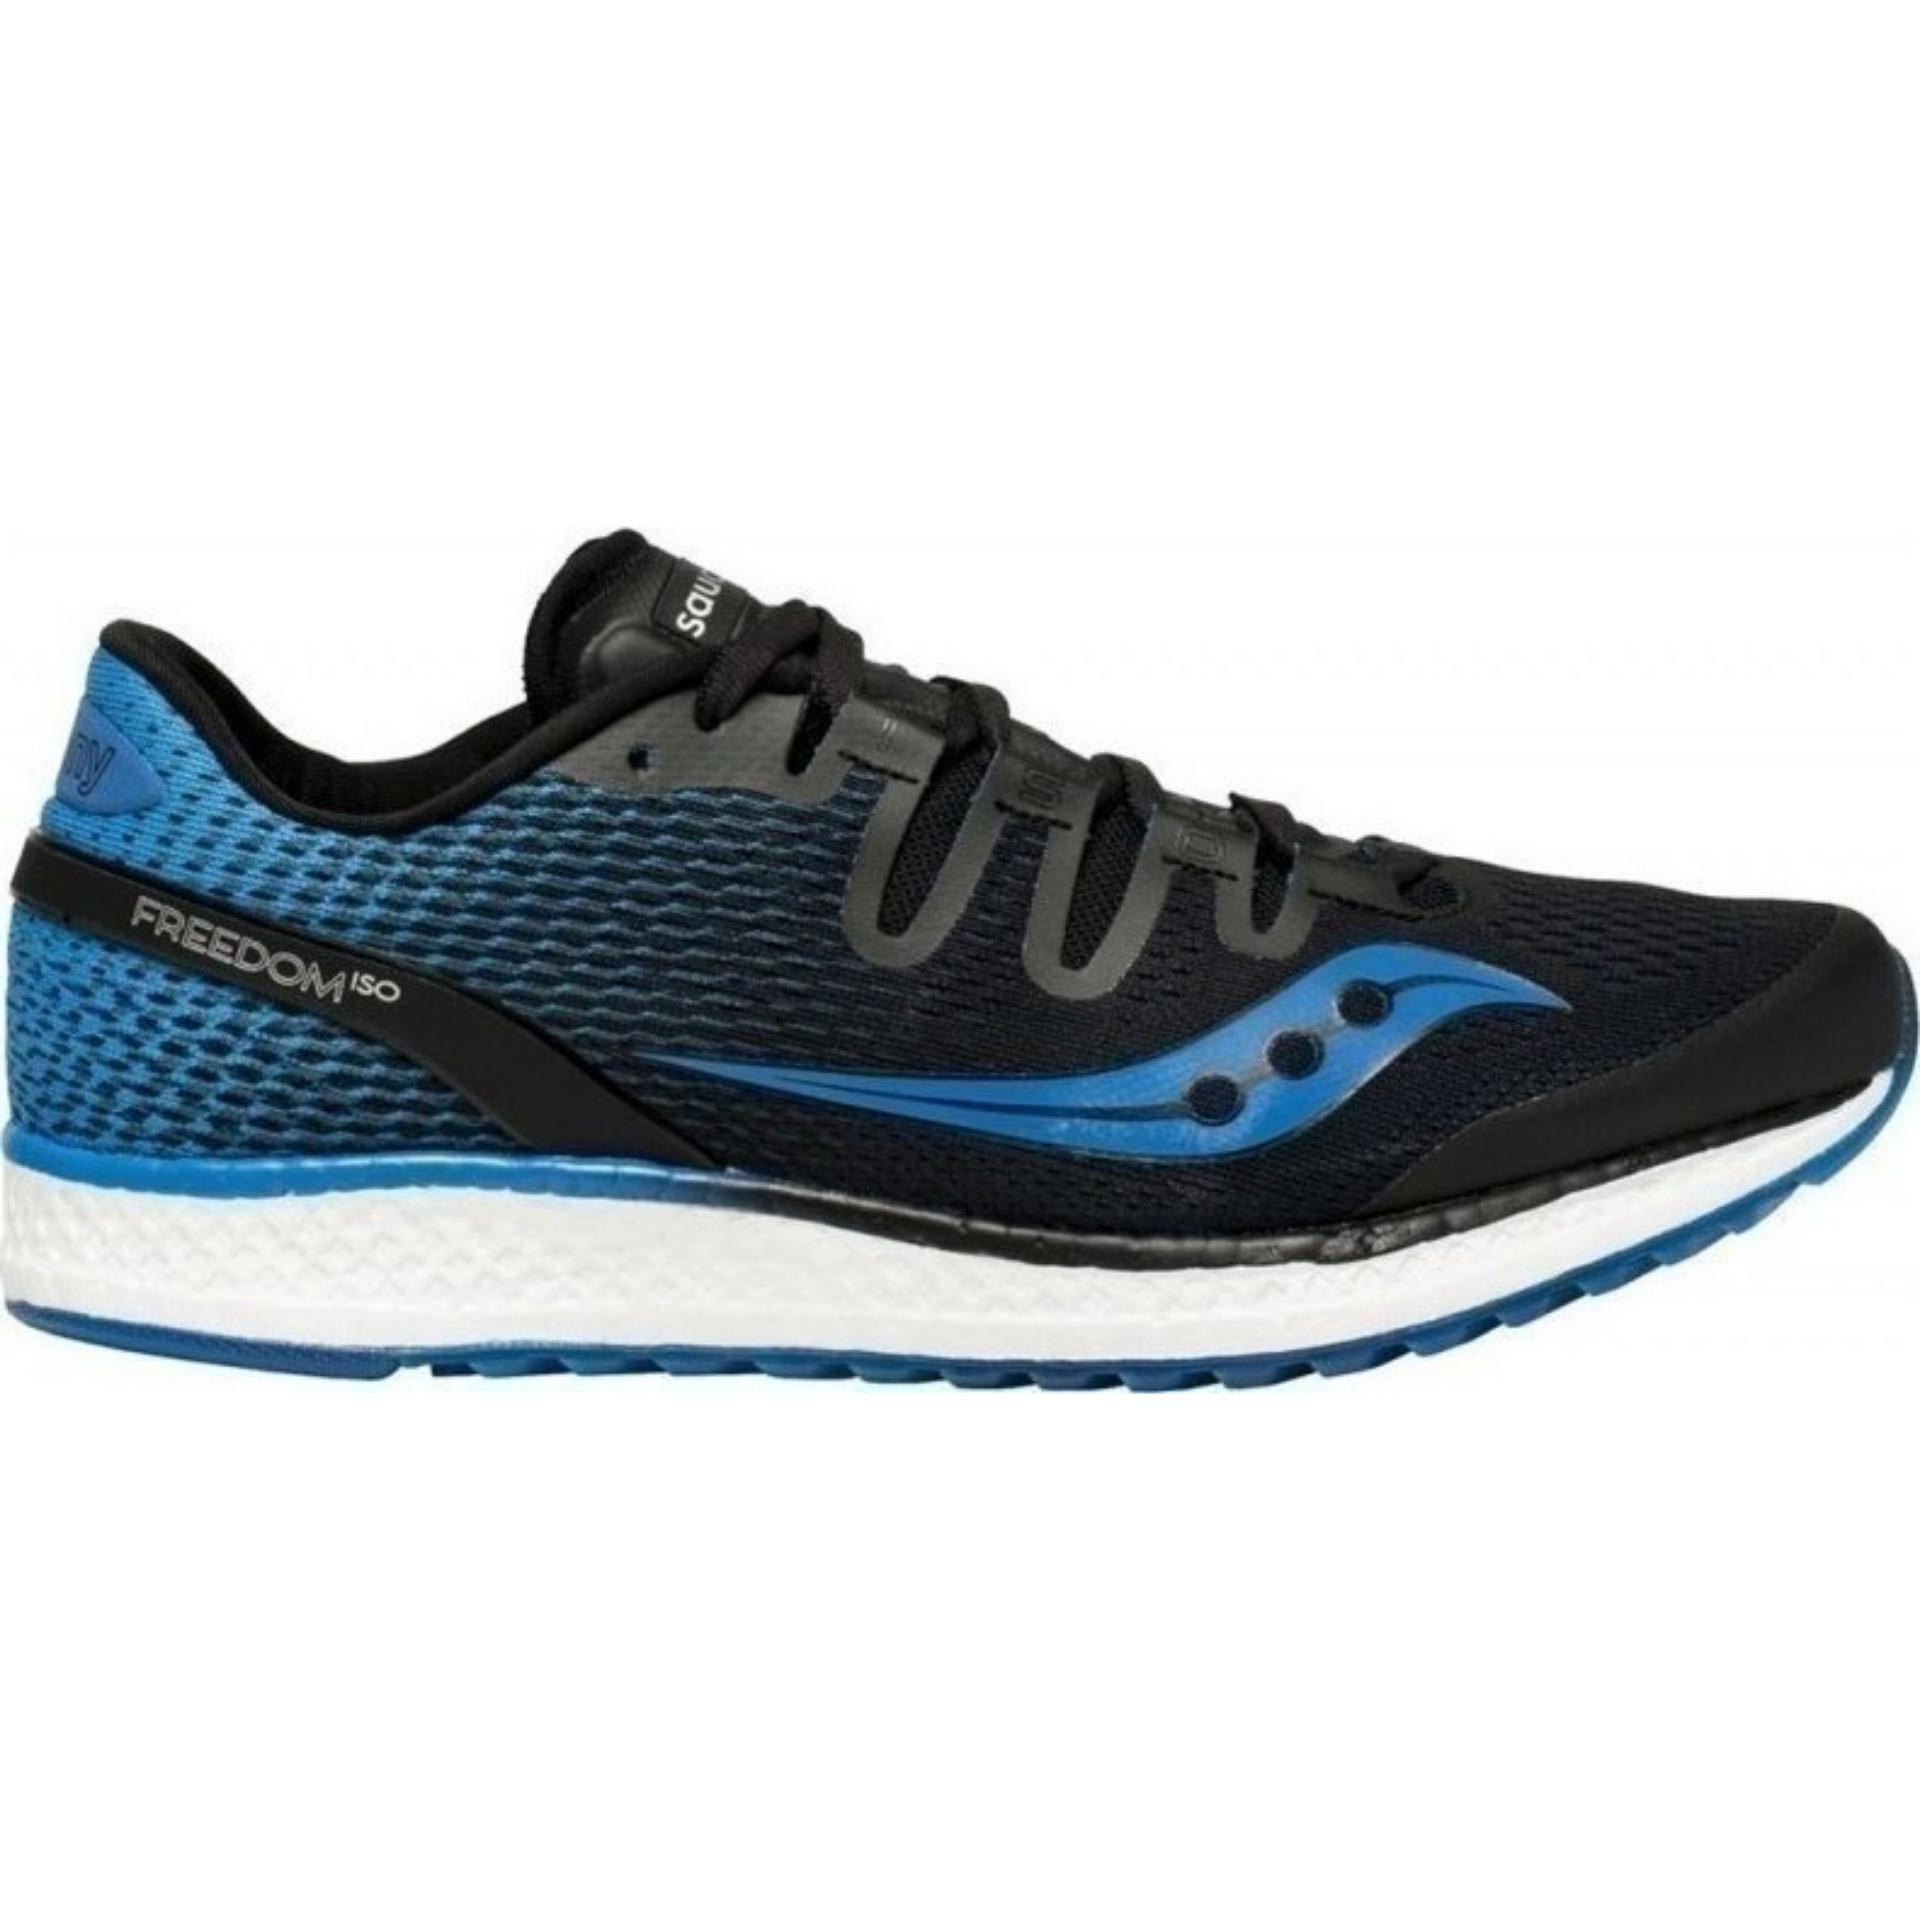 Saucony Men S Freedom Iso Sneaker S20355 7 Saucony Cheap On Singapore